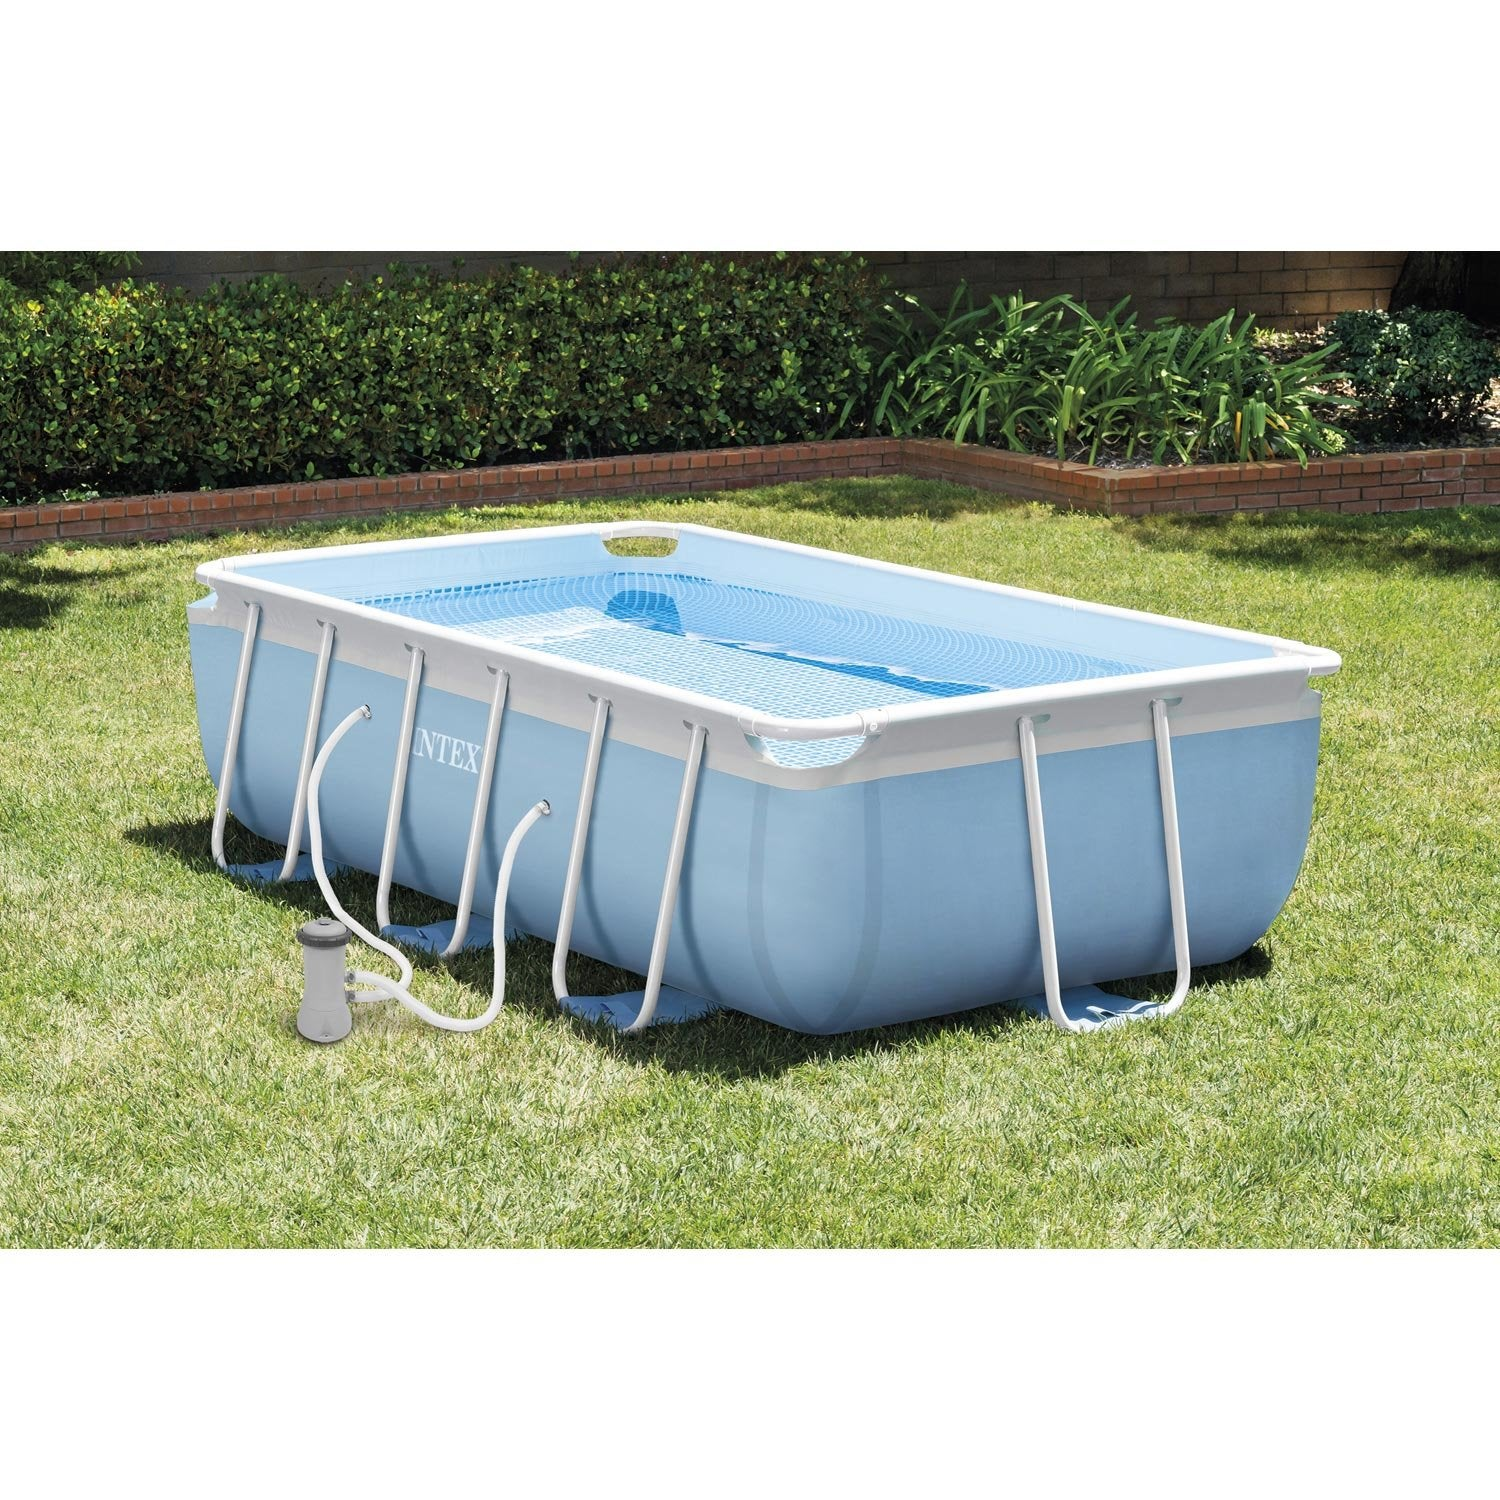 Piscine hors sol autoportante tubulaire intex l 3 4 x l 2 for Piscine aure sole